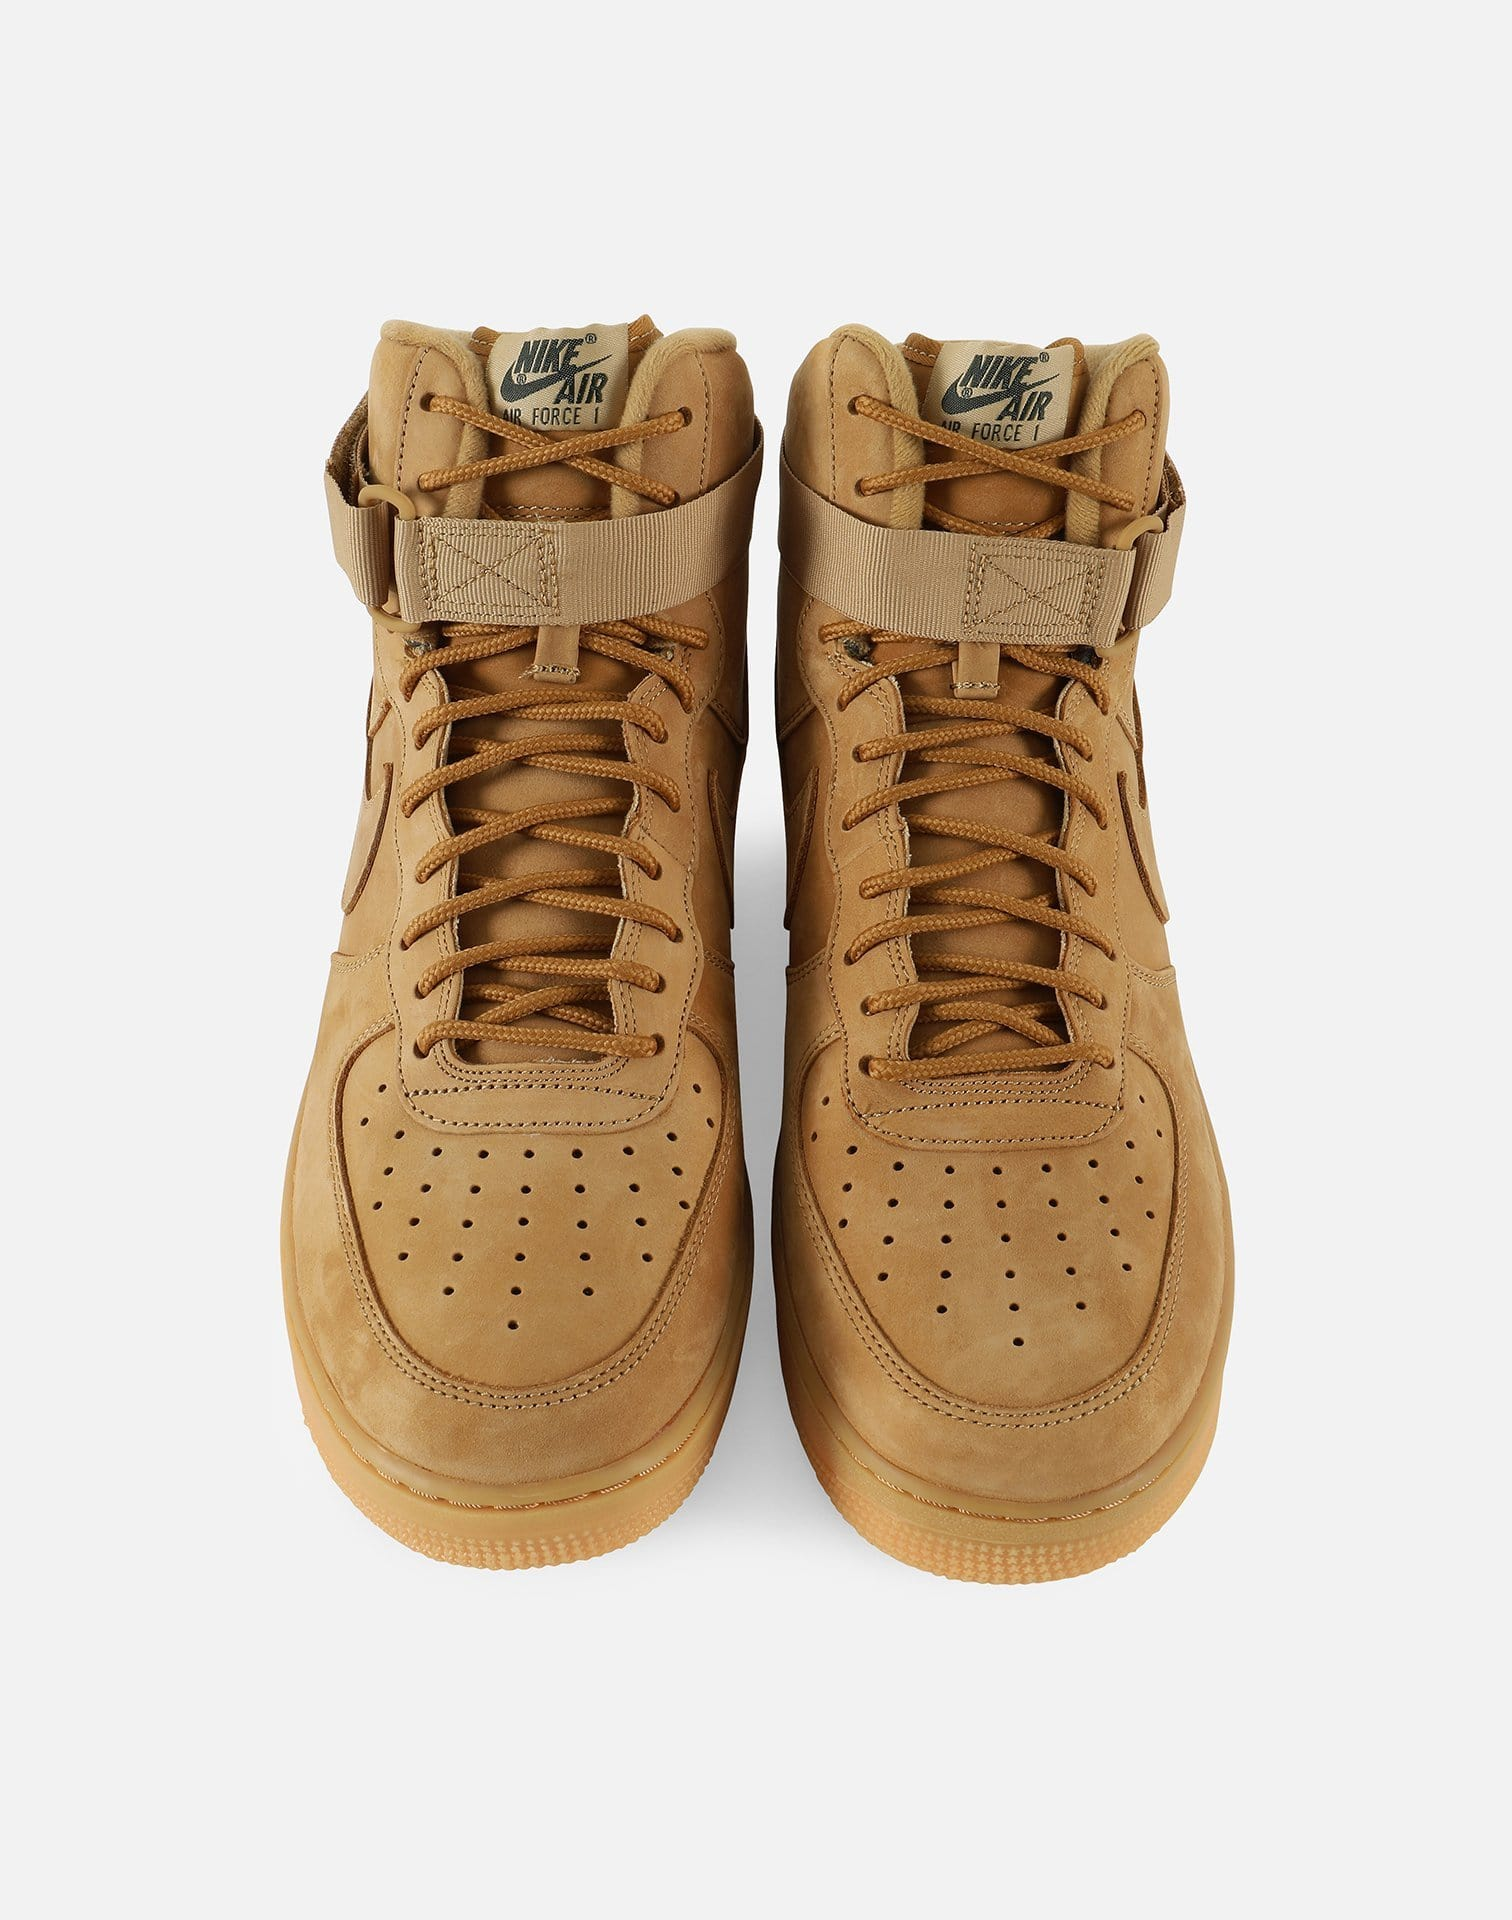 Nike Air Force 1 07 High LV8